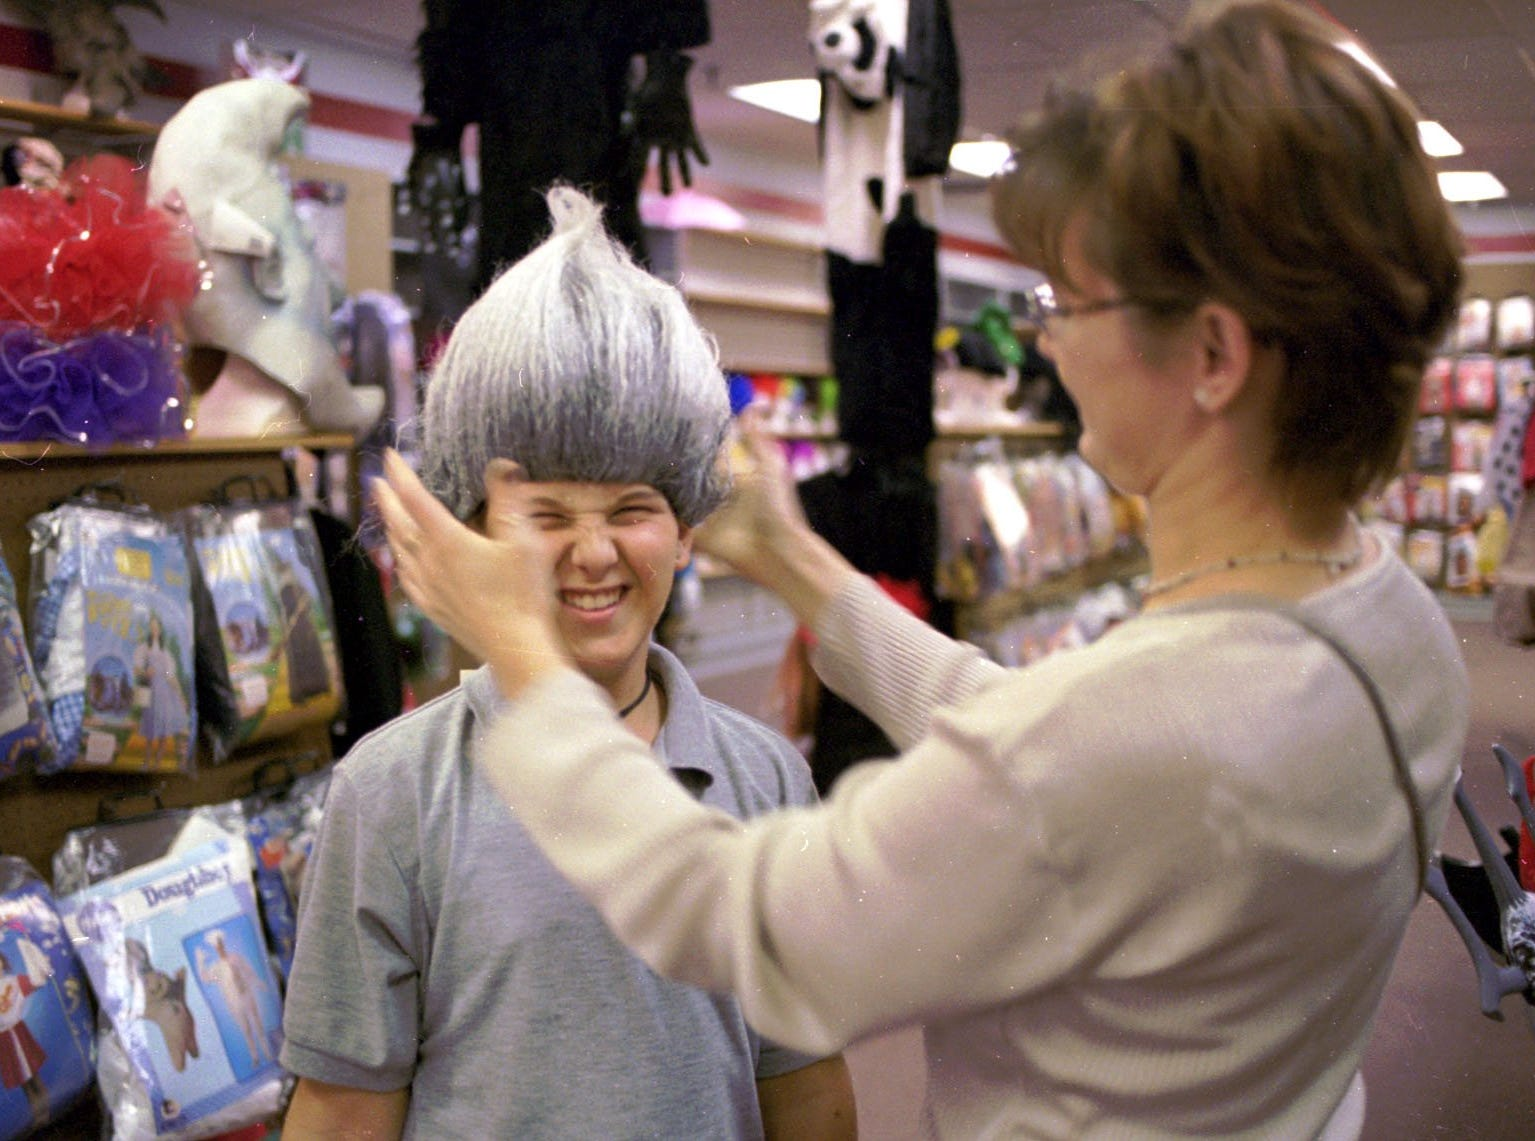 1998: Casey Dibble, 9, scrunches up his face as his mom, Lisa Plouse of Waverly, fits a Don King-type wig on him at The Costume Place at the Arnot Mall.